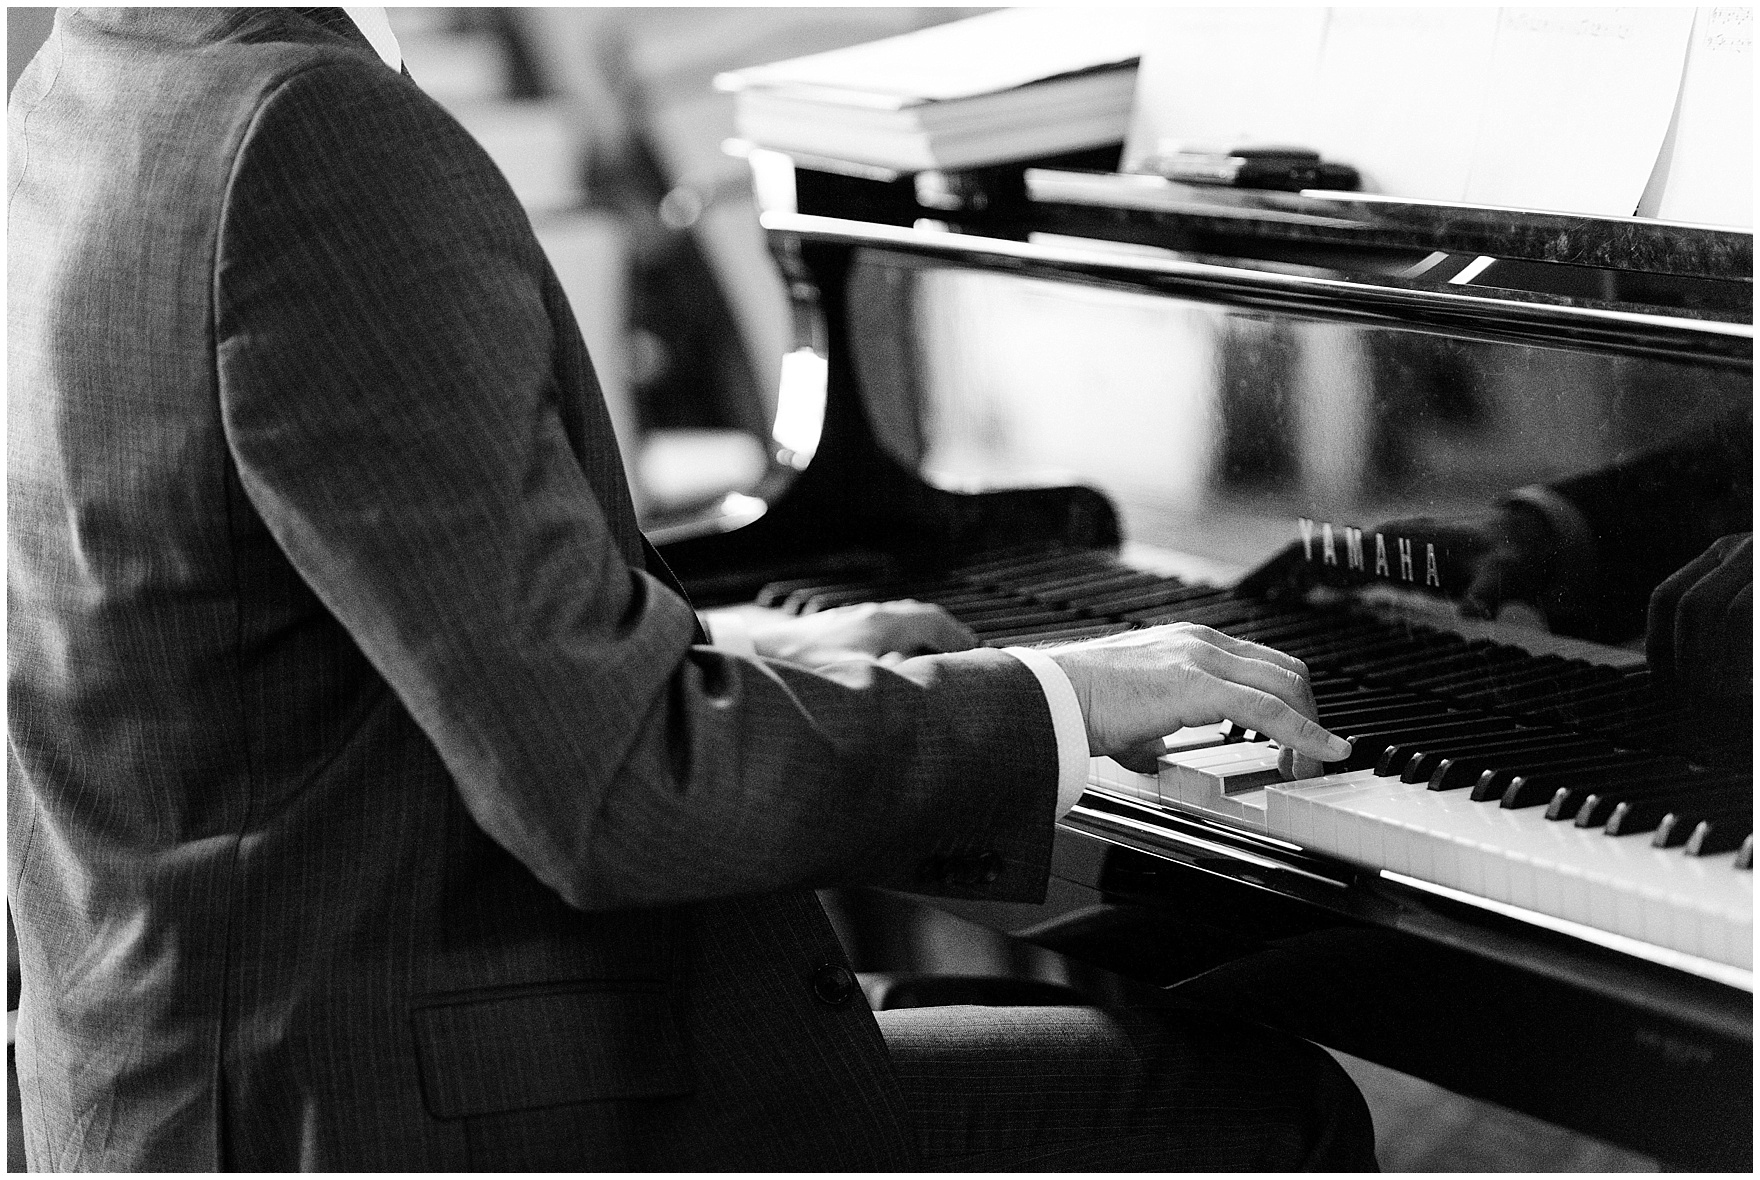 The pianist plays during a Glen Club Glenview Illinois wedding.